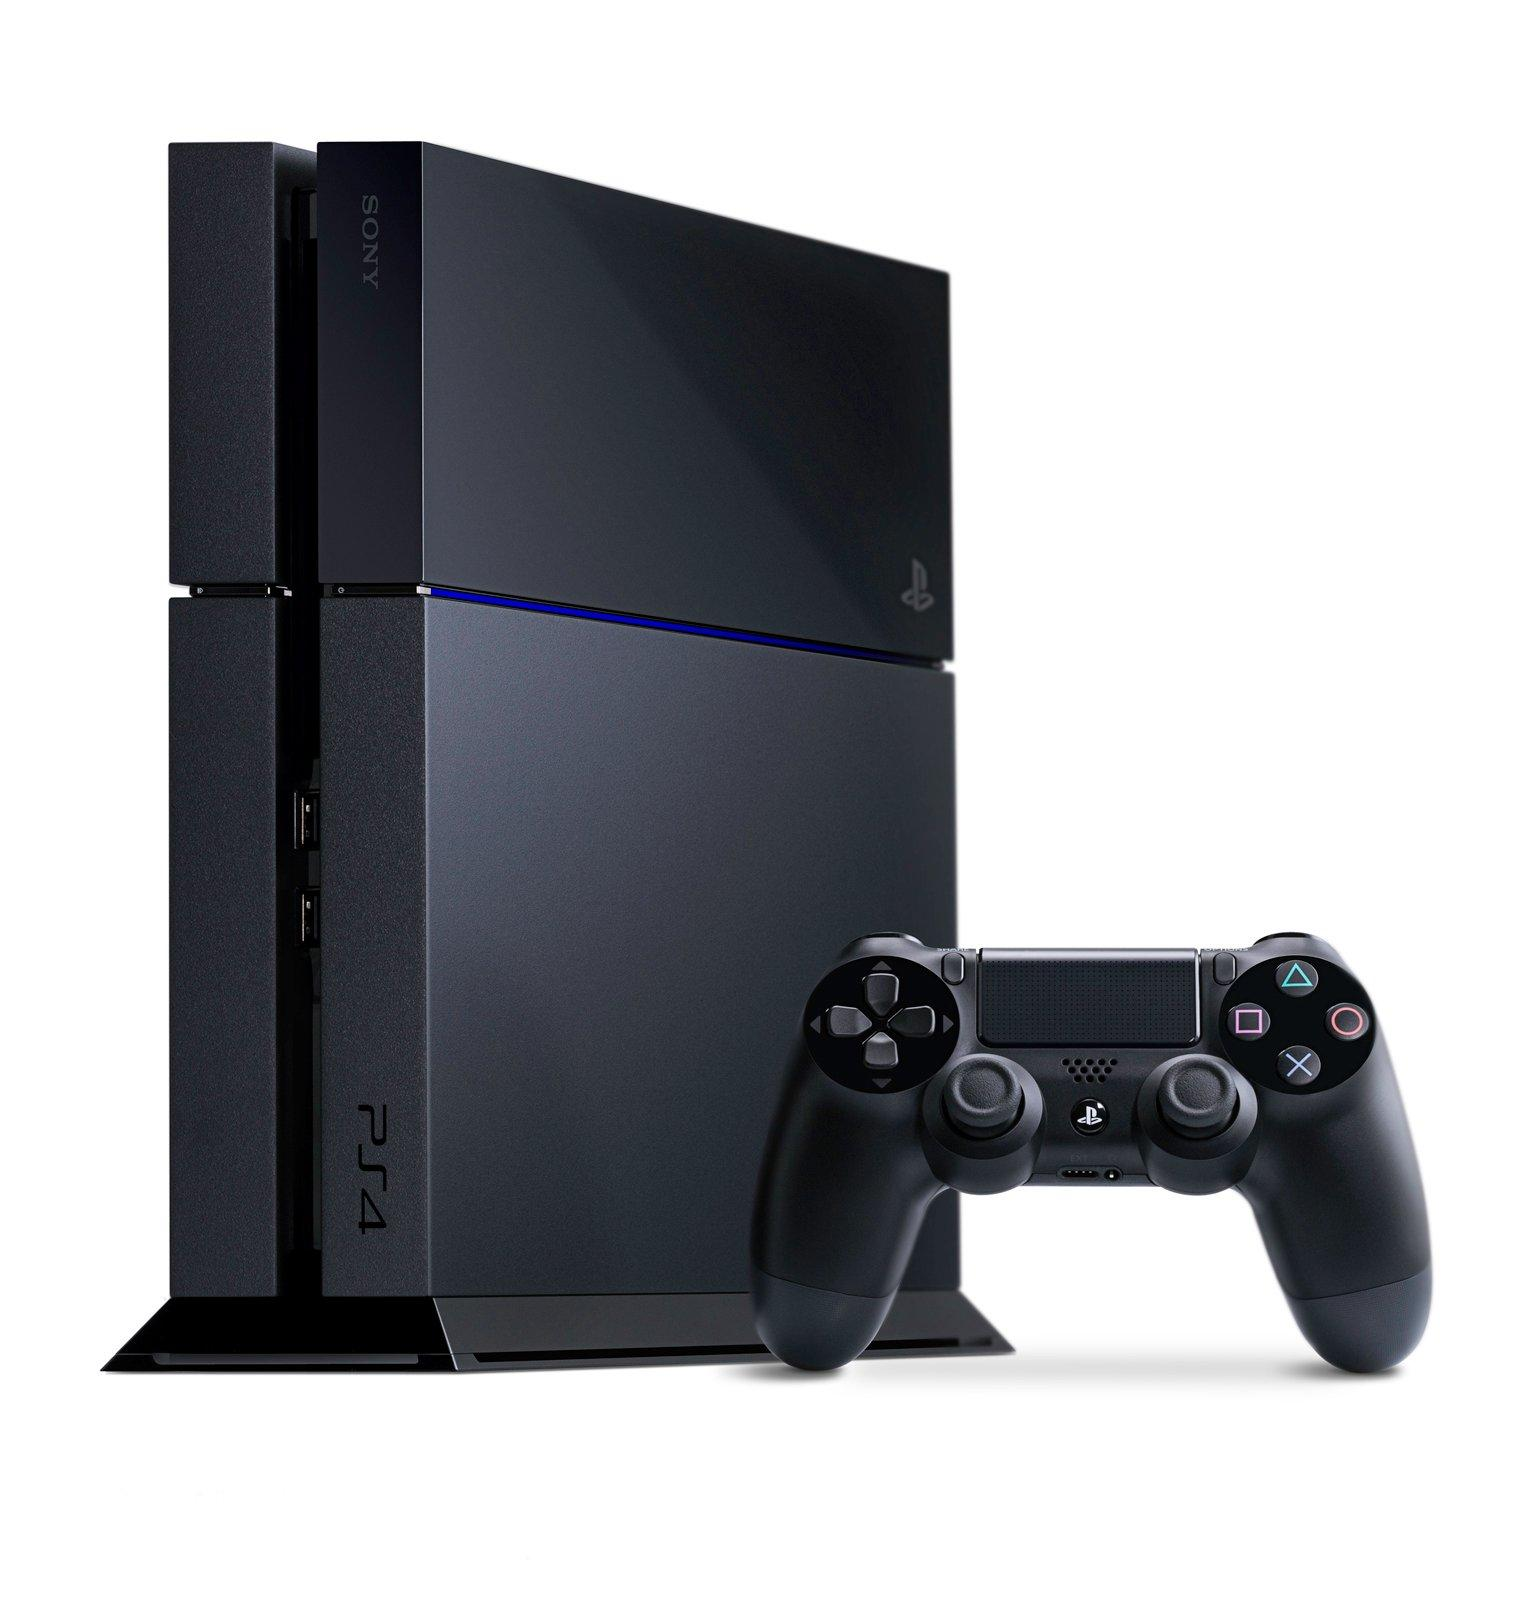 PlayStation 4 Black 500GB GameStop Premium Refurbished